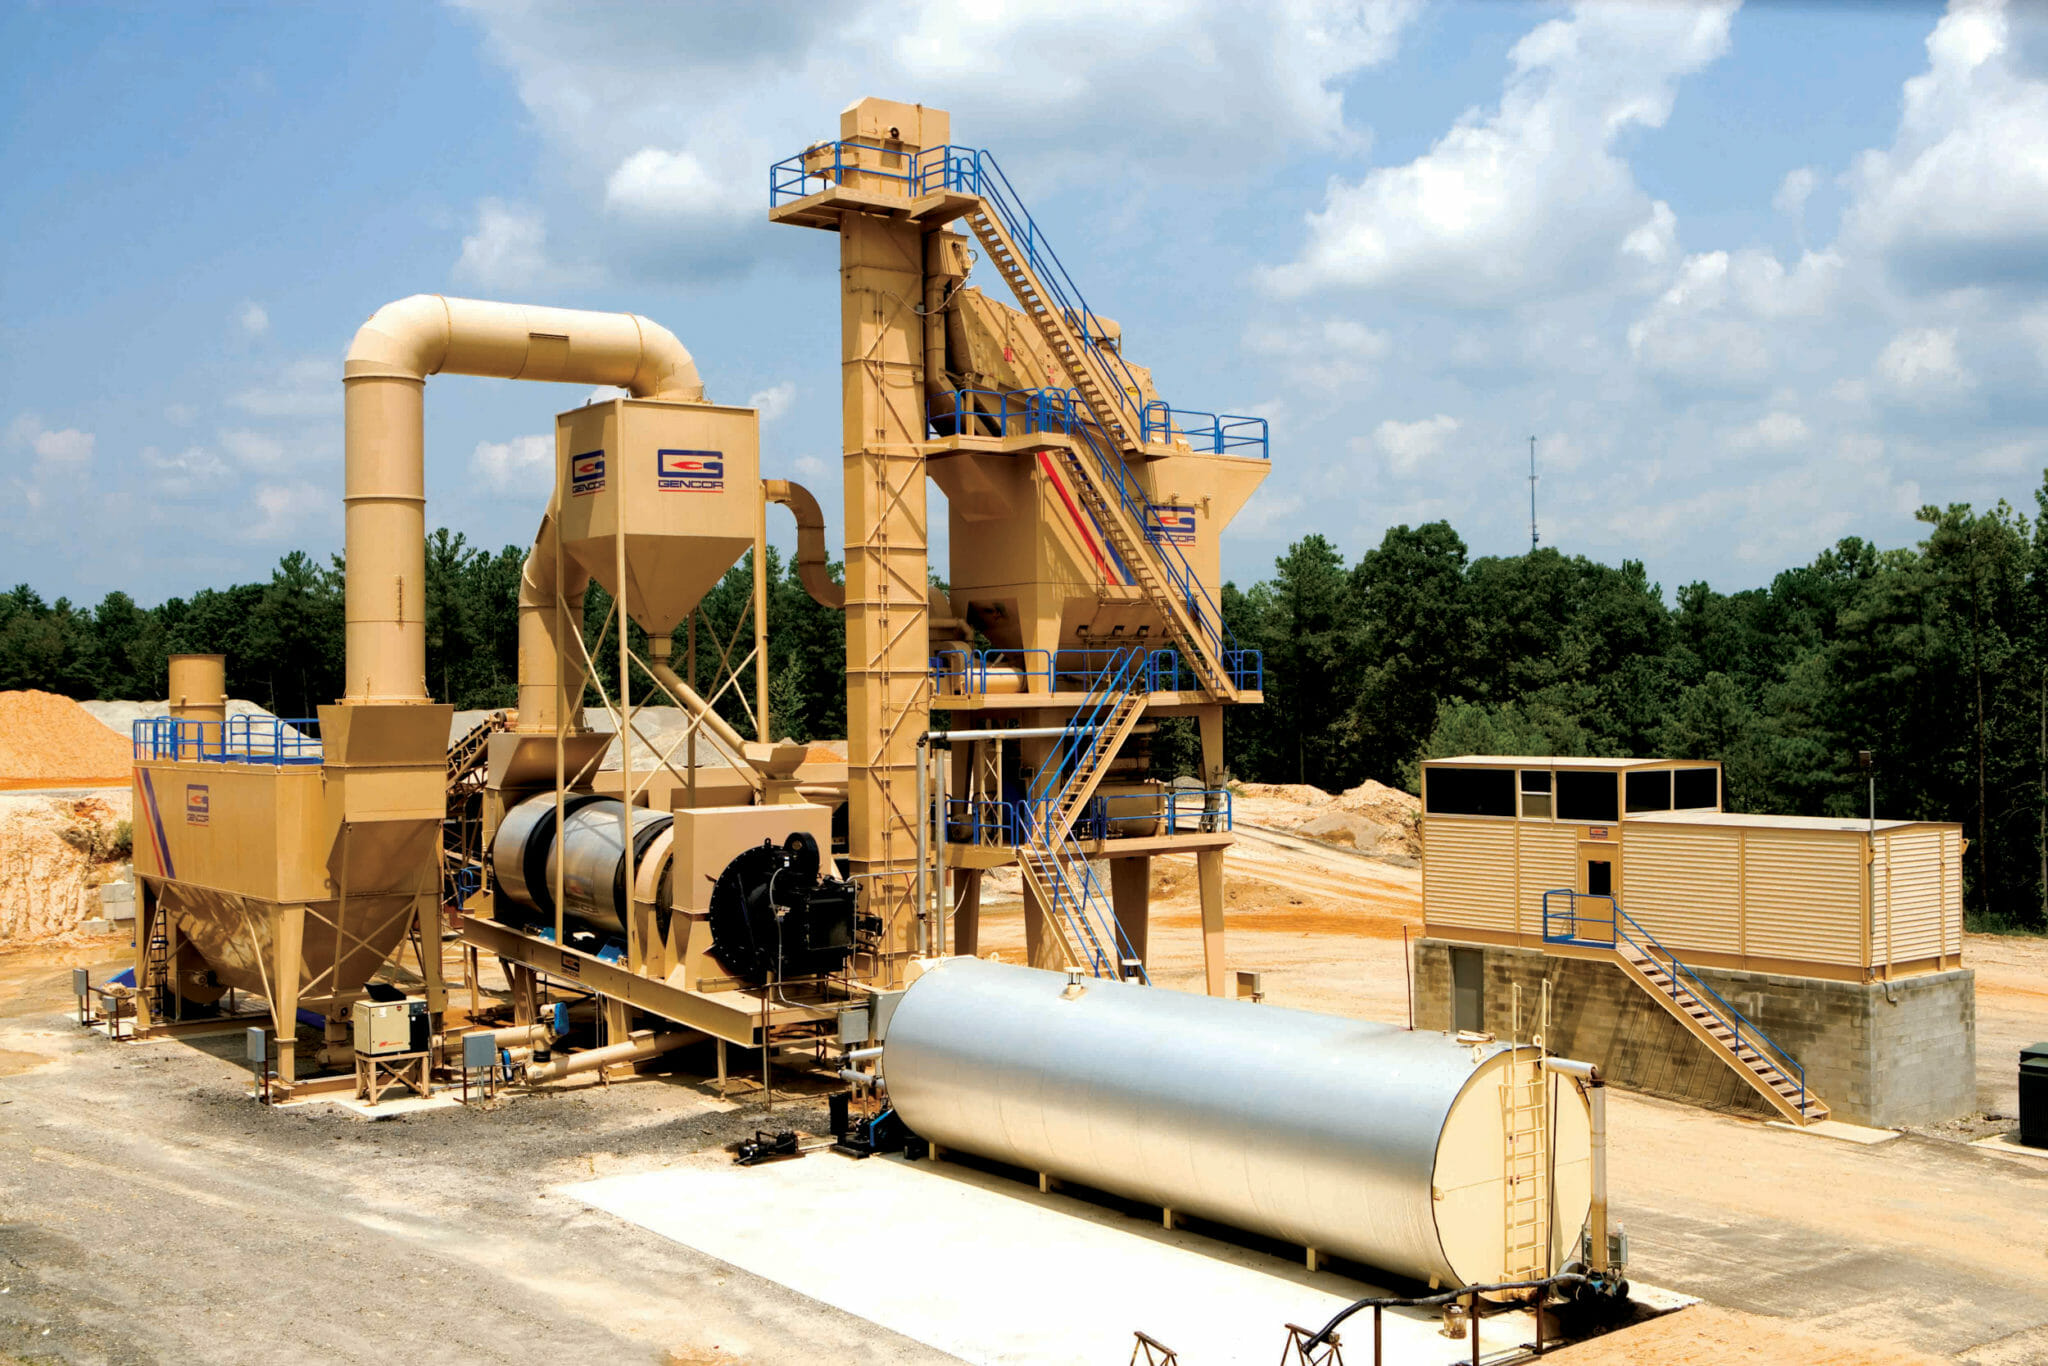 Gencor Batch Plant Riley Carthage, NC